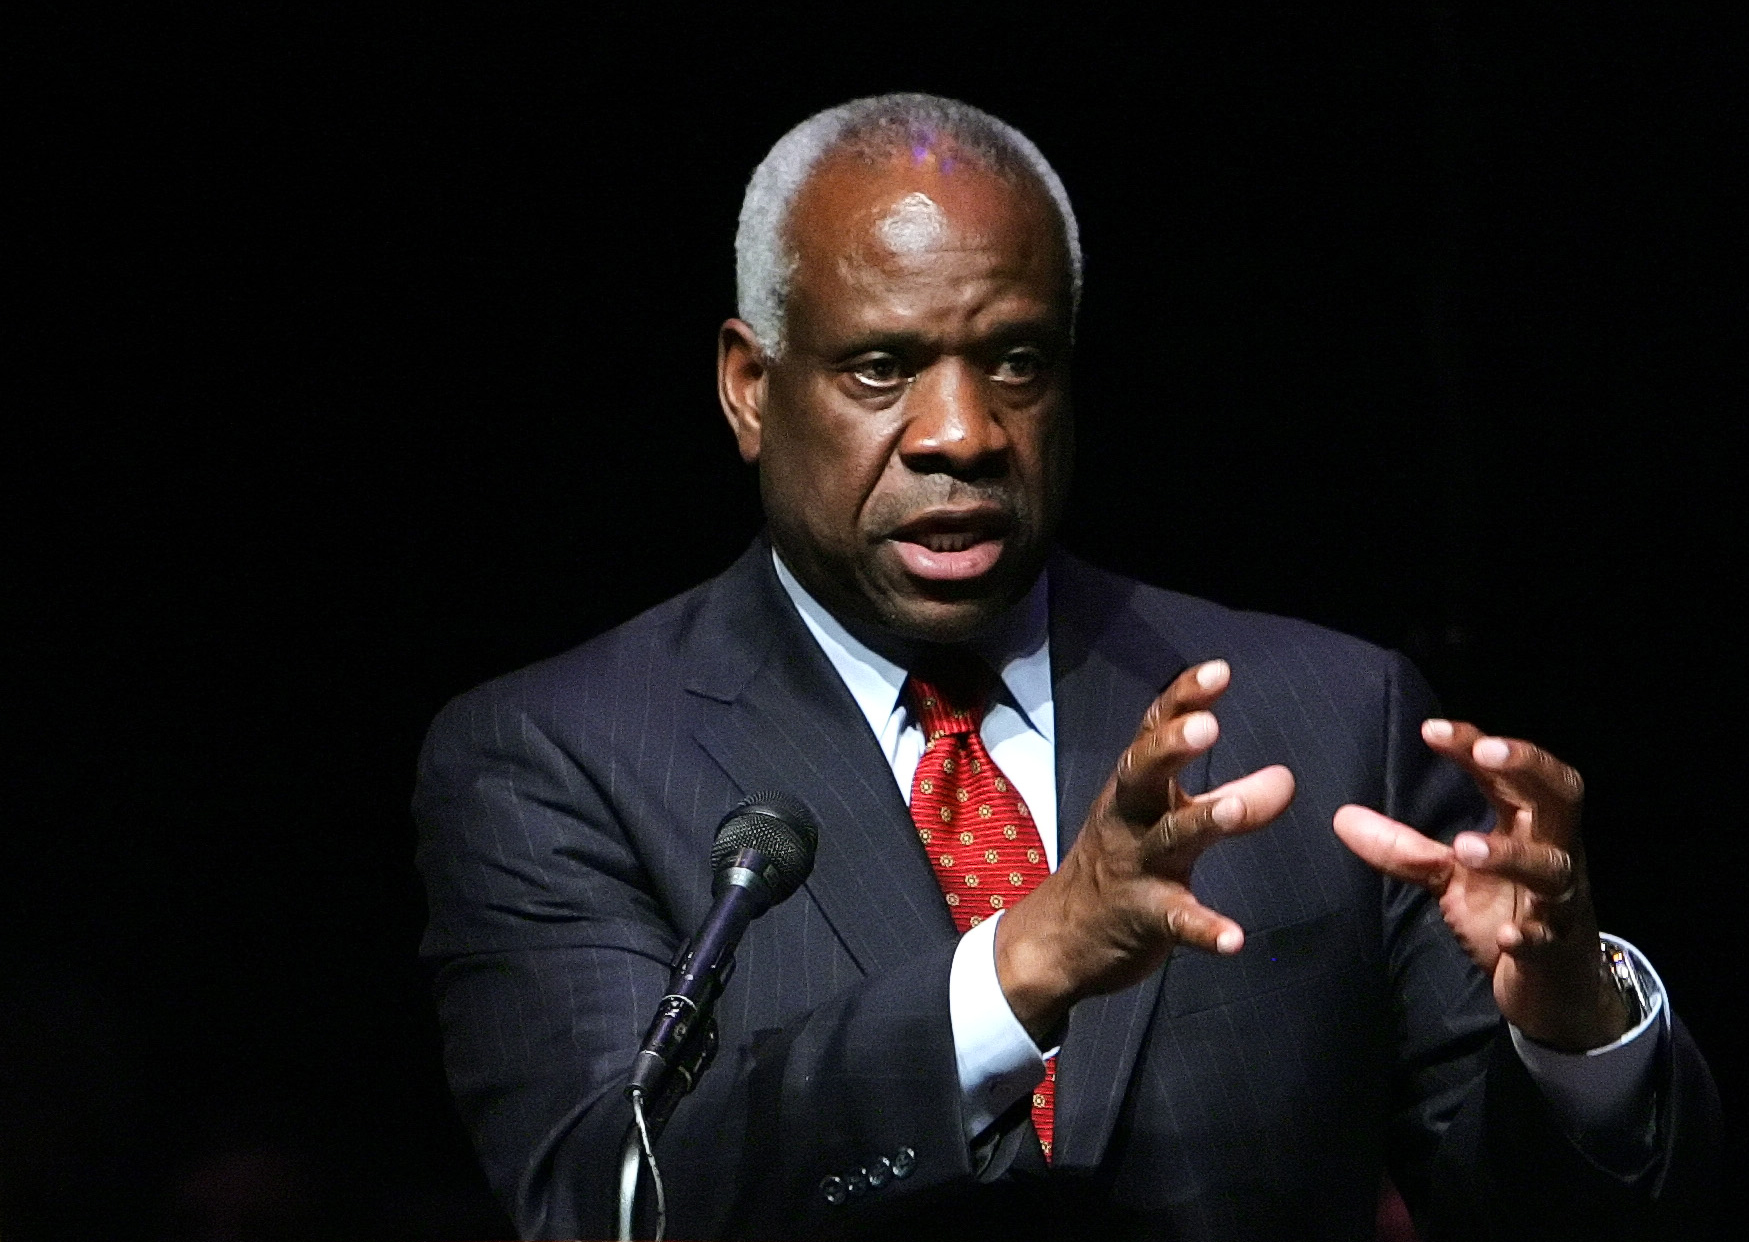 Clarence Thomas to swear in Mike Pence at inauguration